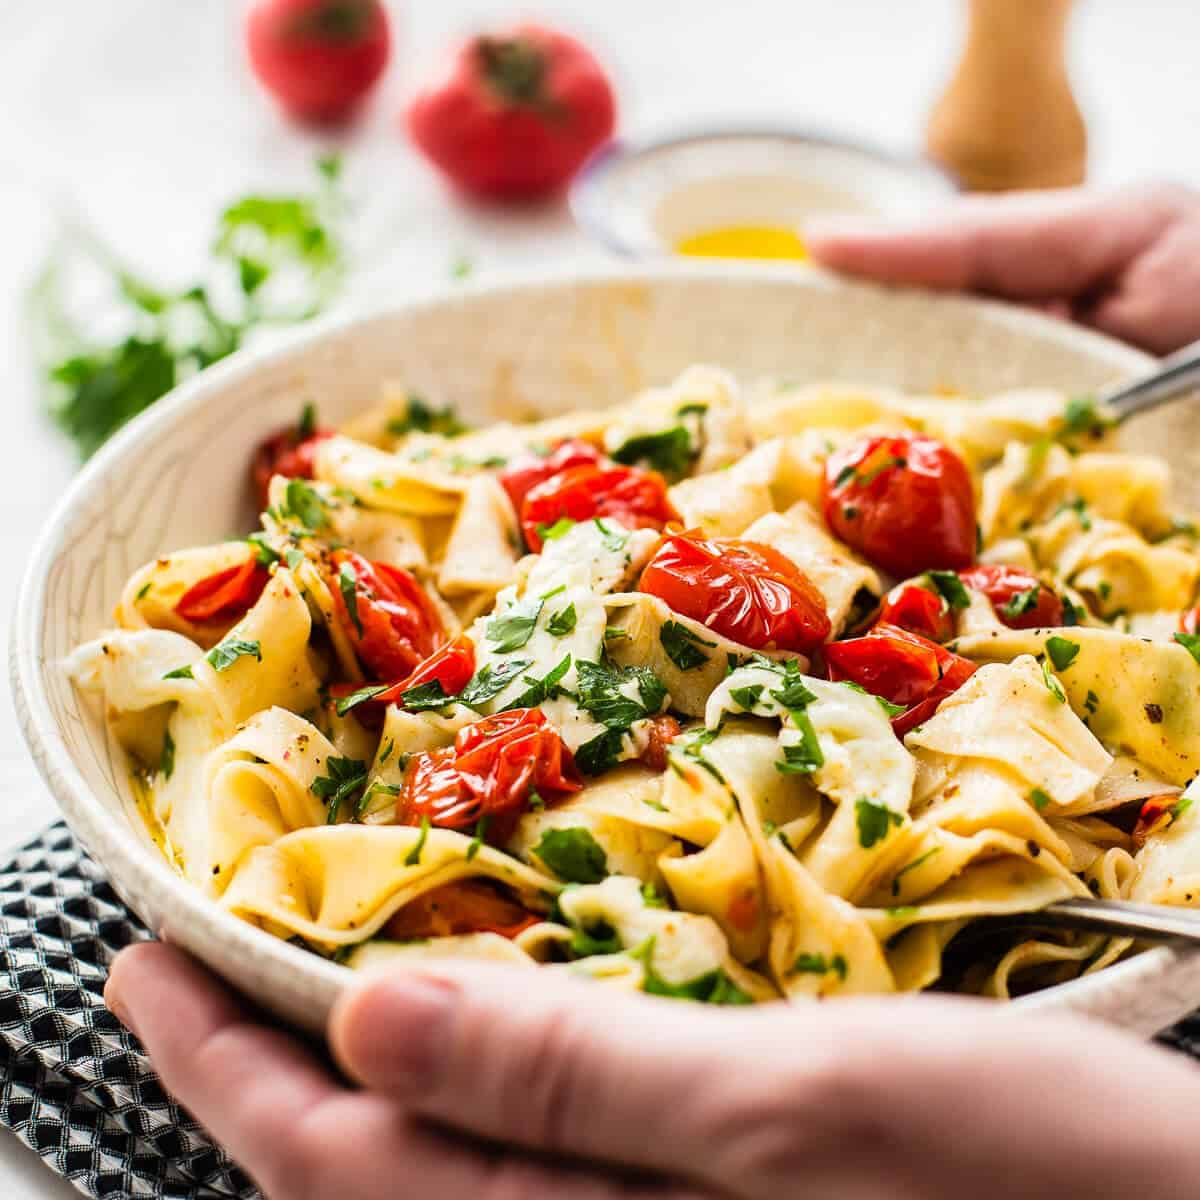 cherry tomato pasta in white bowl. Hands holding the bowl served on a black napkin with tomato, olive oil, pepper grinder and parsley in the background